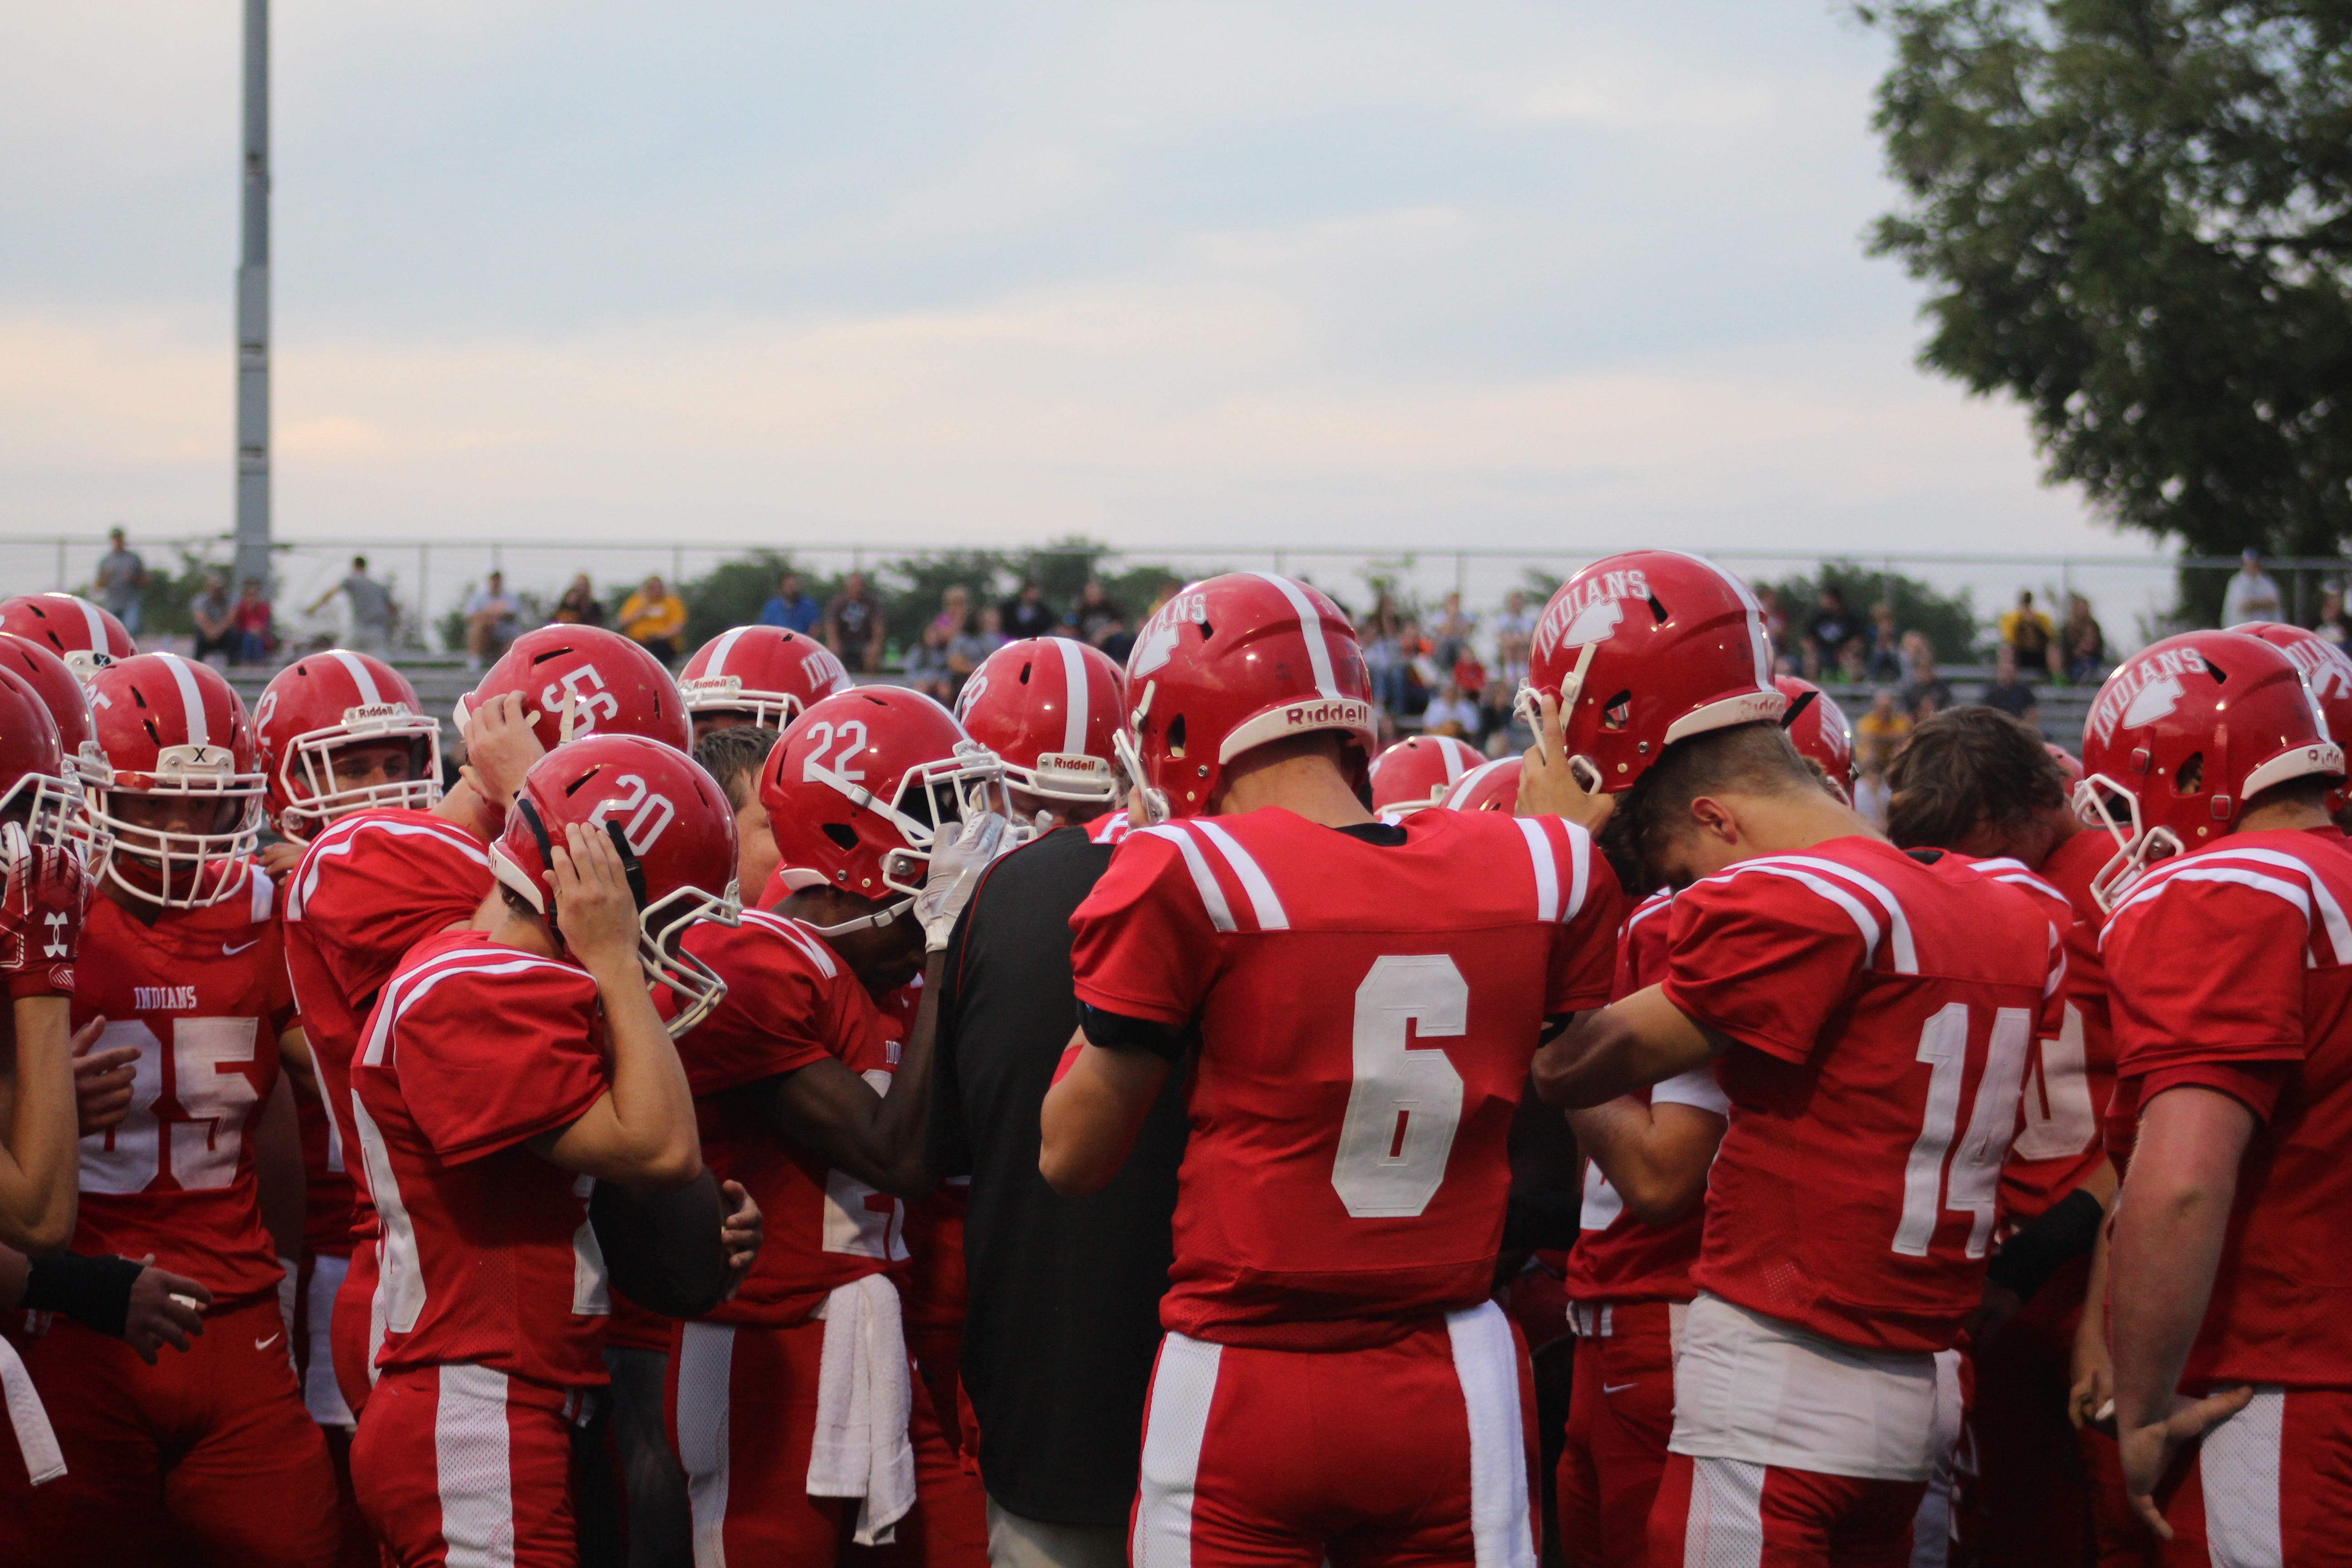 Hillsboro players remove their helmets in the huddle